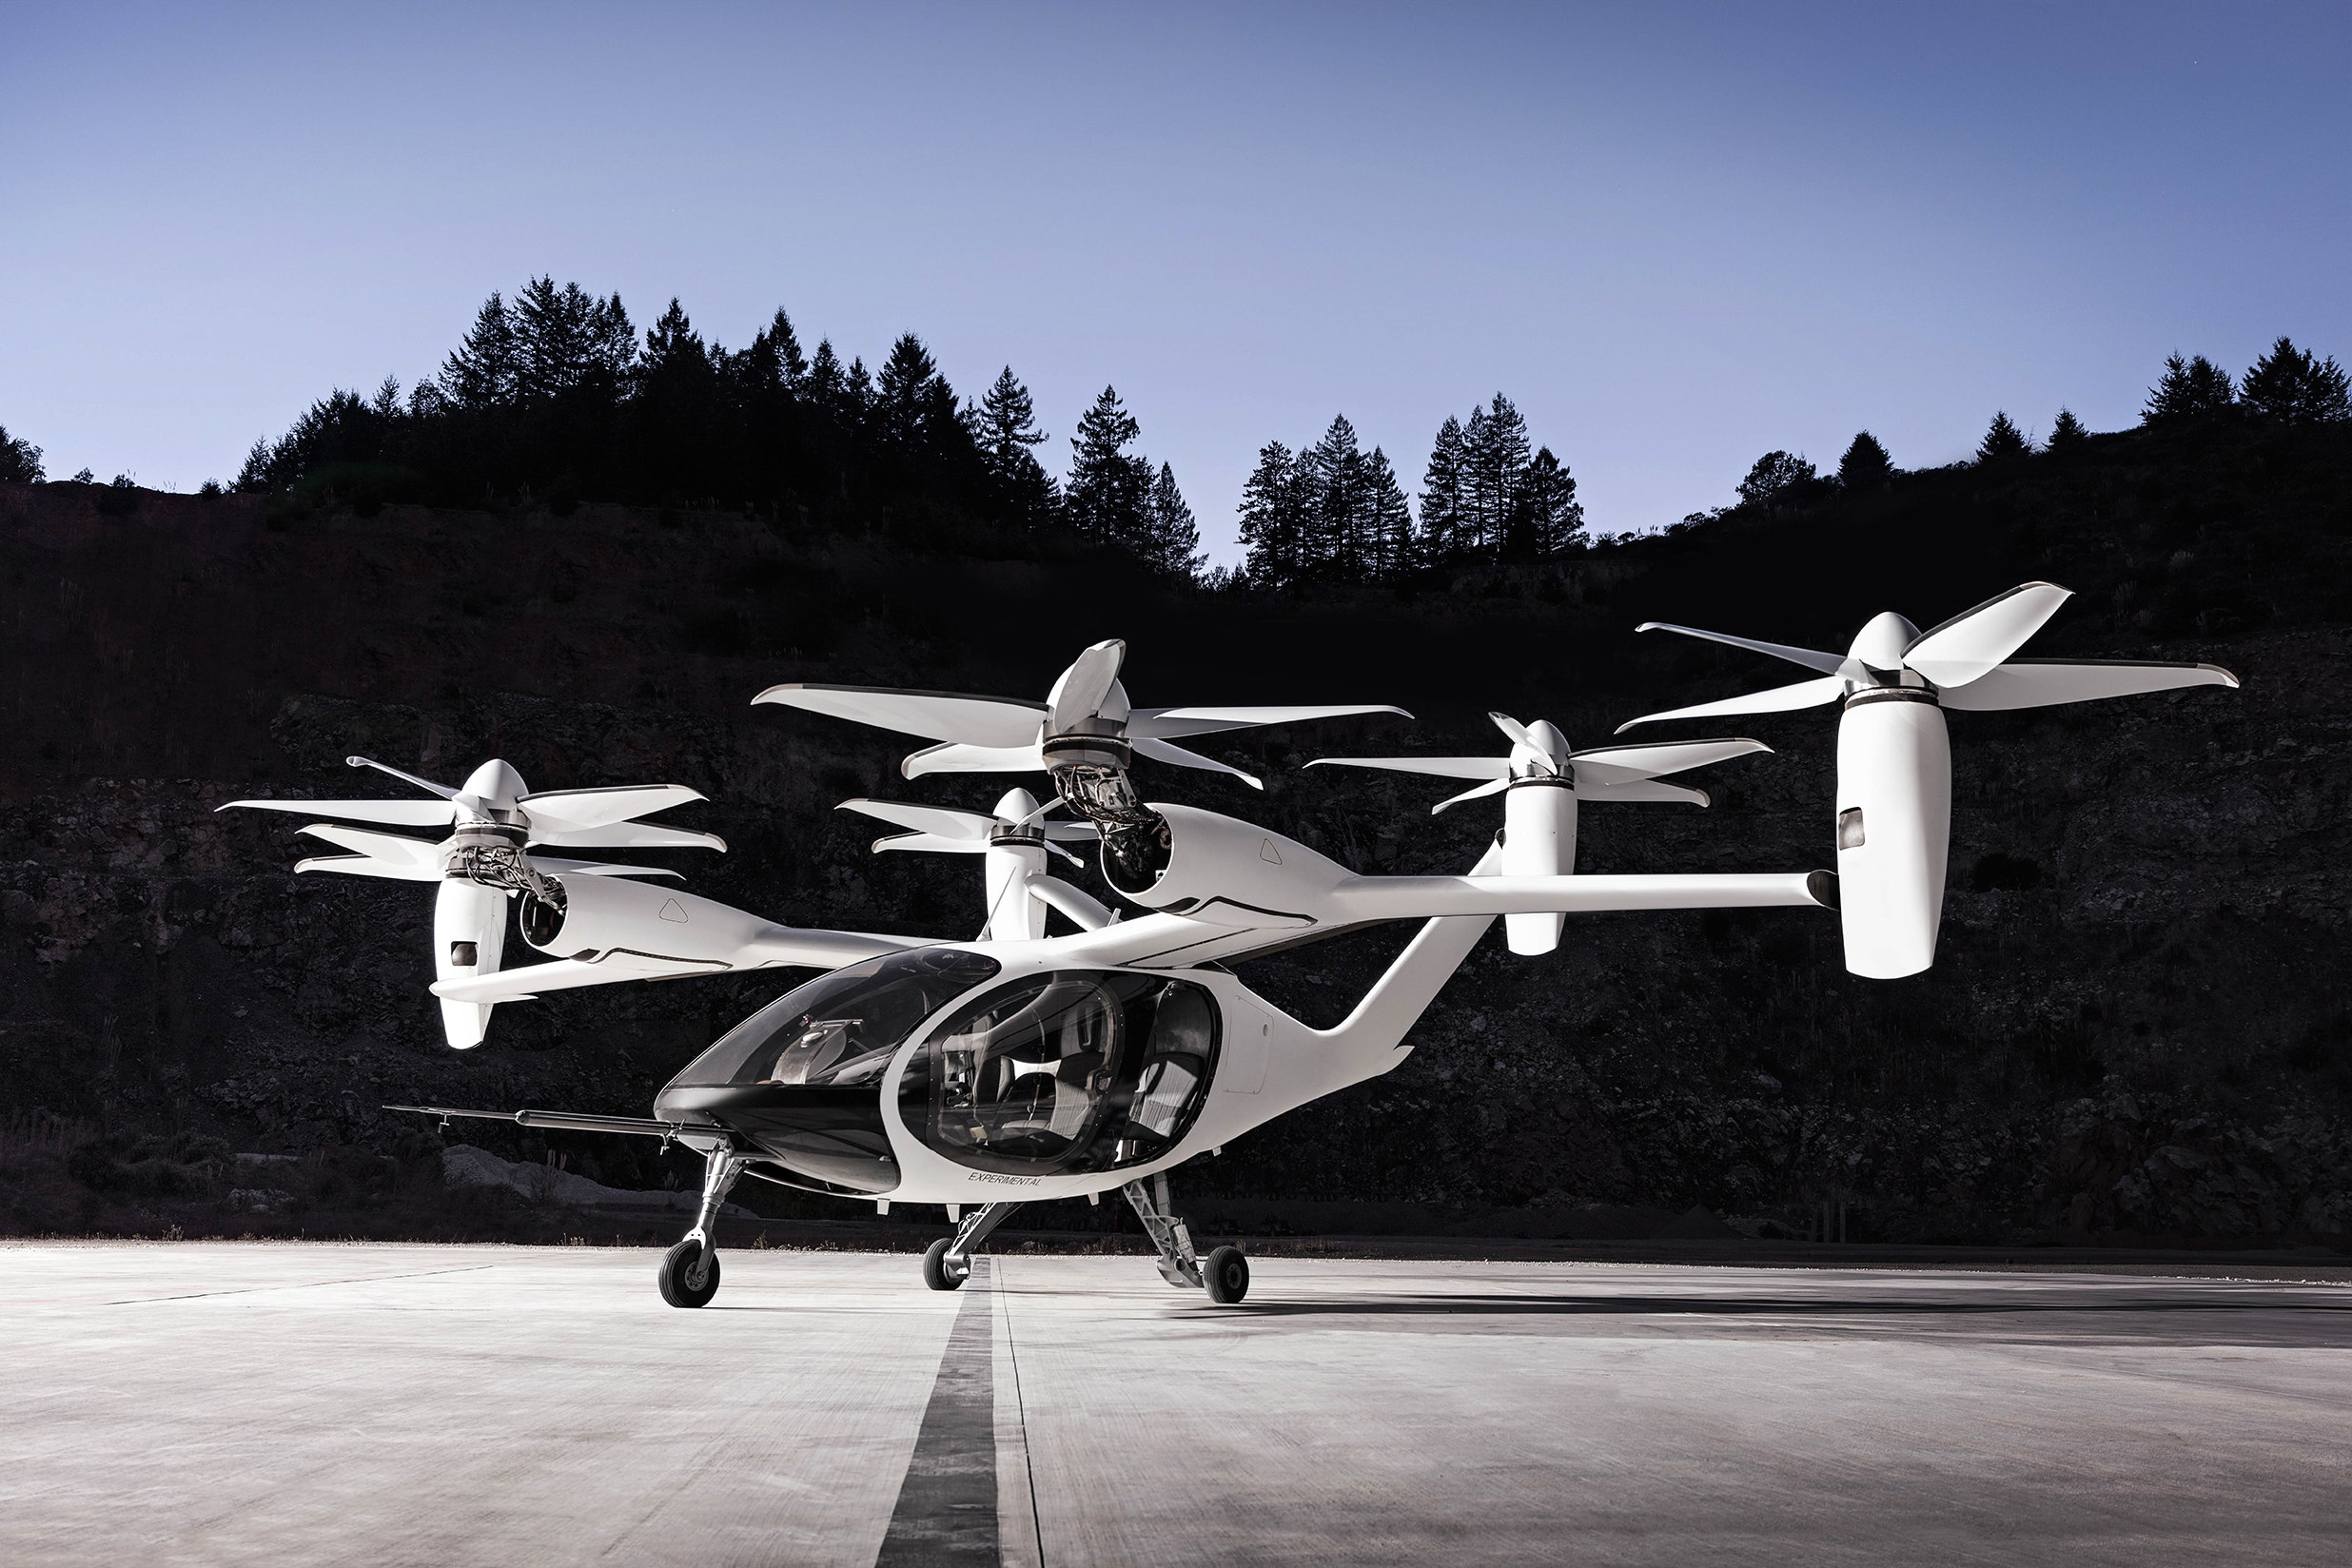 Joby's electric flying taxi completes 150-mile flight